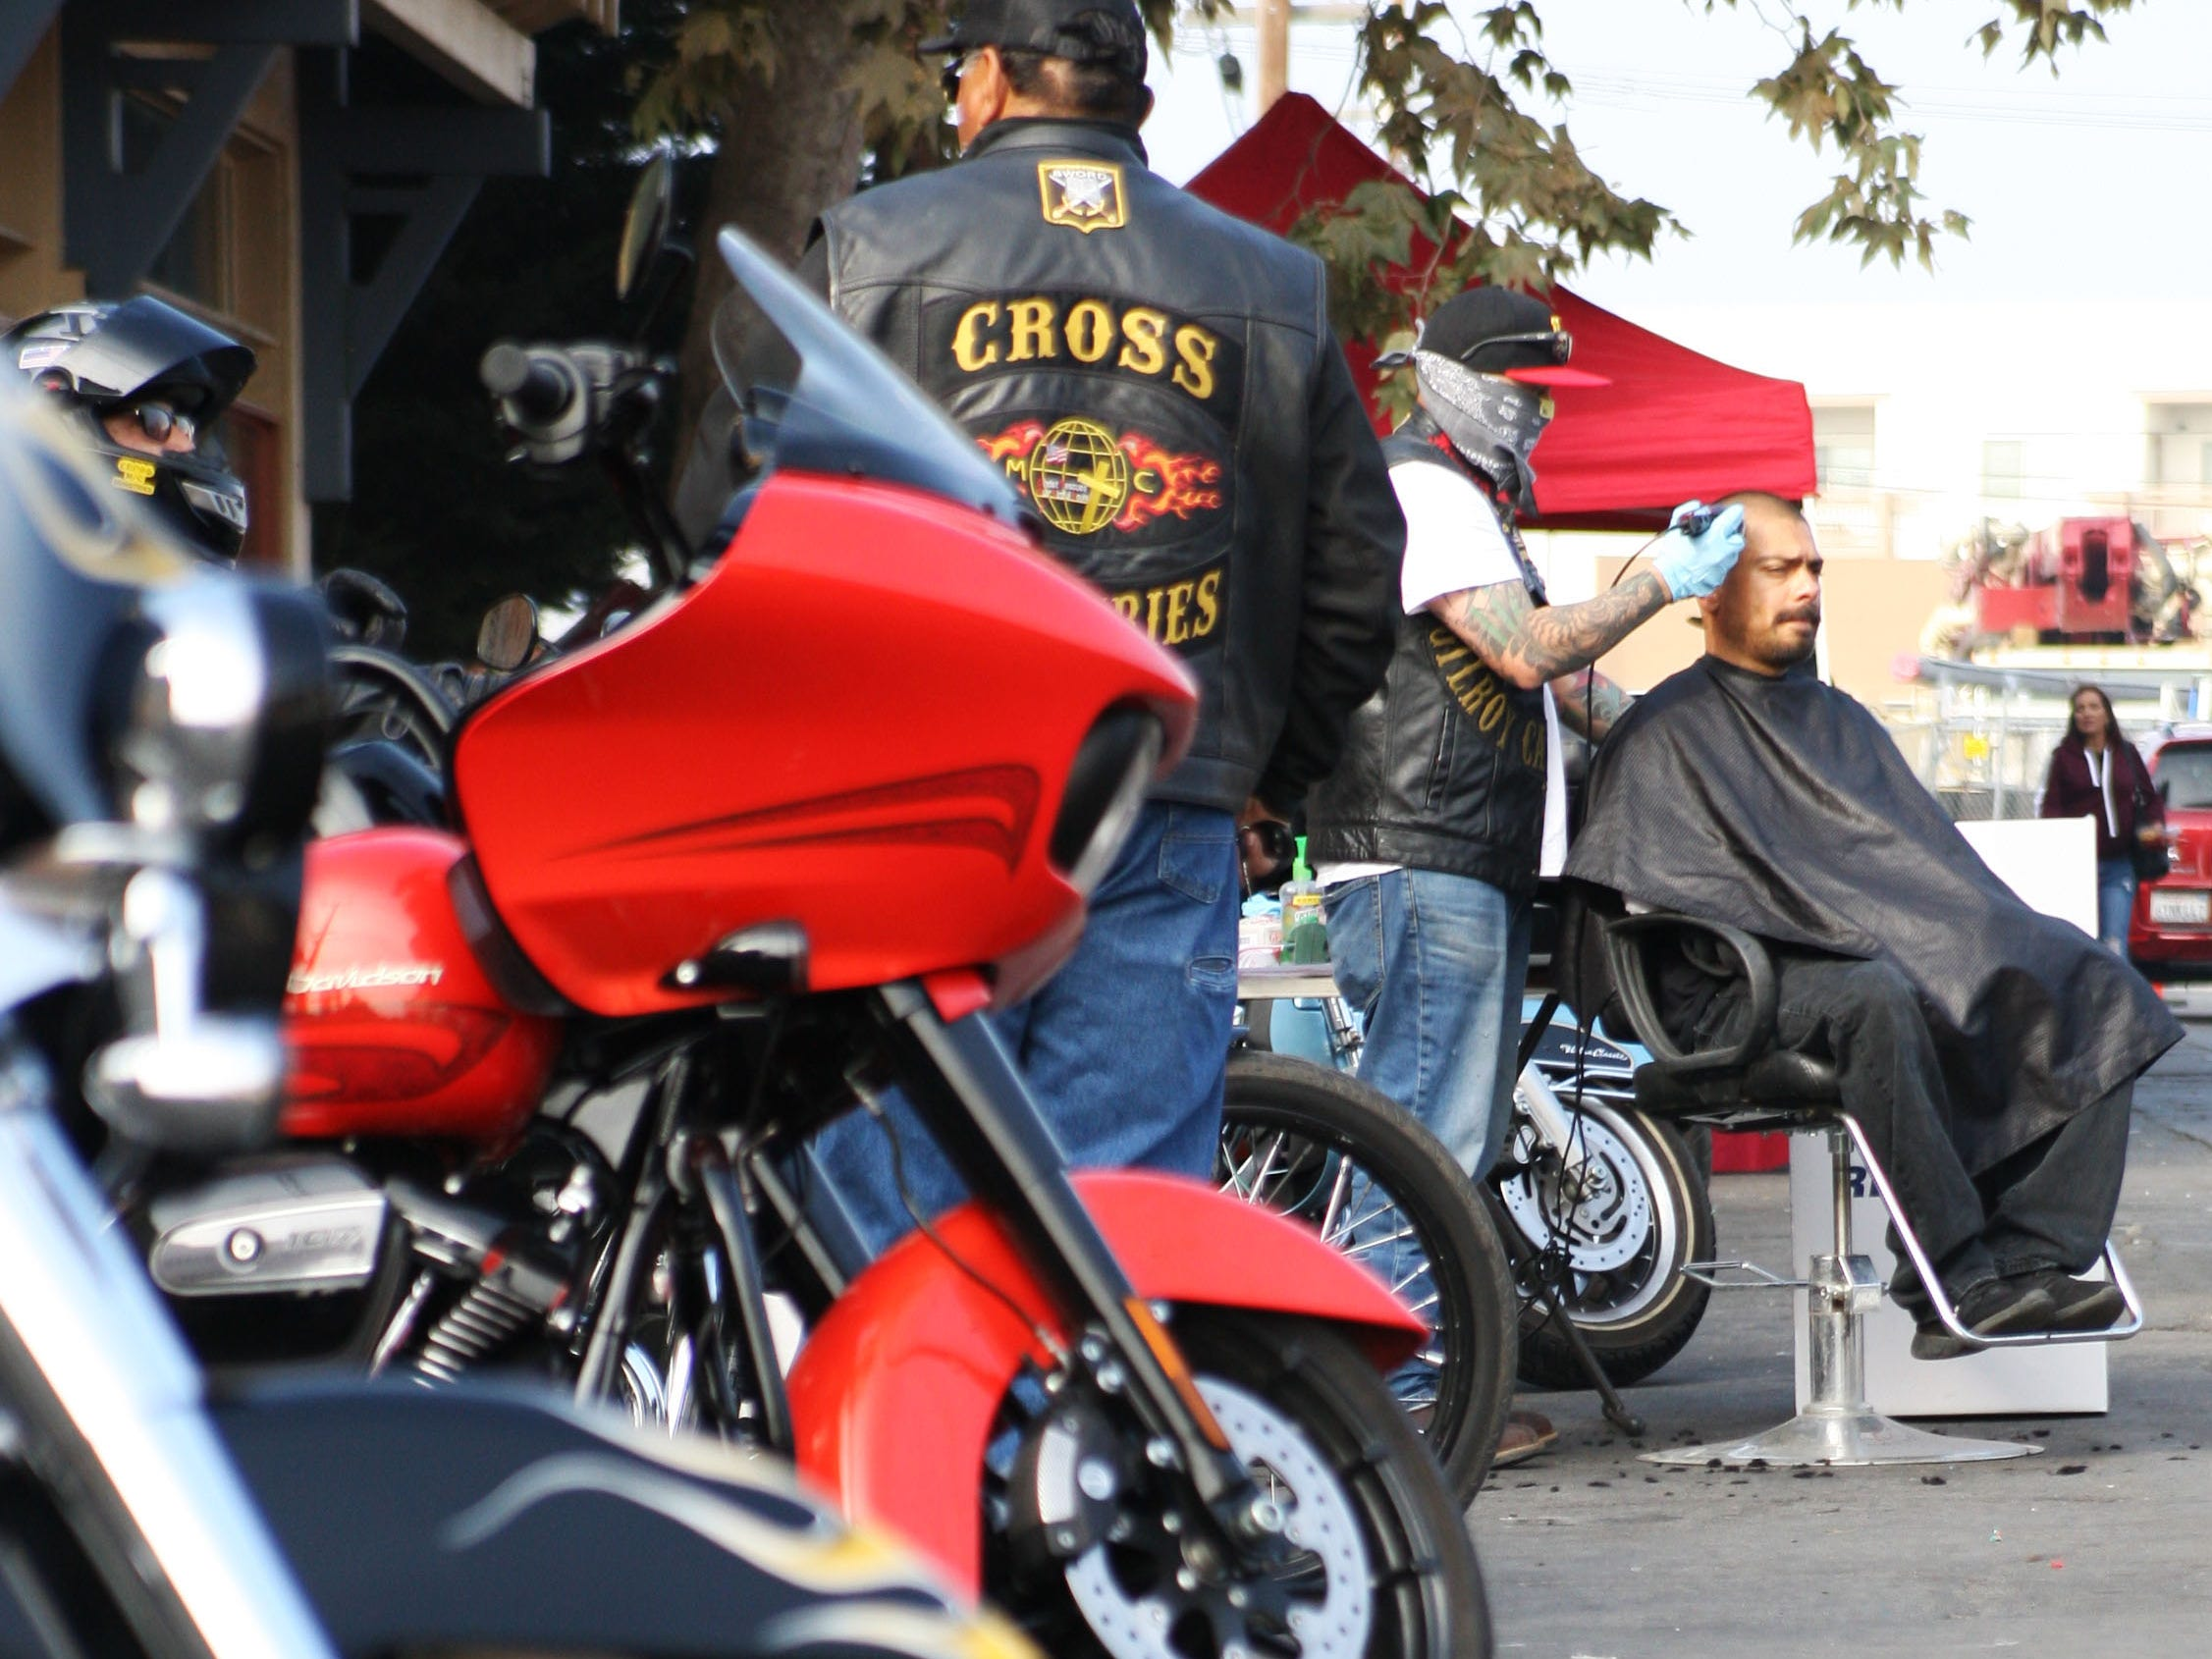 Cross Motorcycle Ministries gave out free haircuts to the homeless and those in need Saturday at the Chinatown block party.